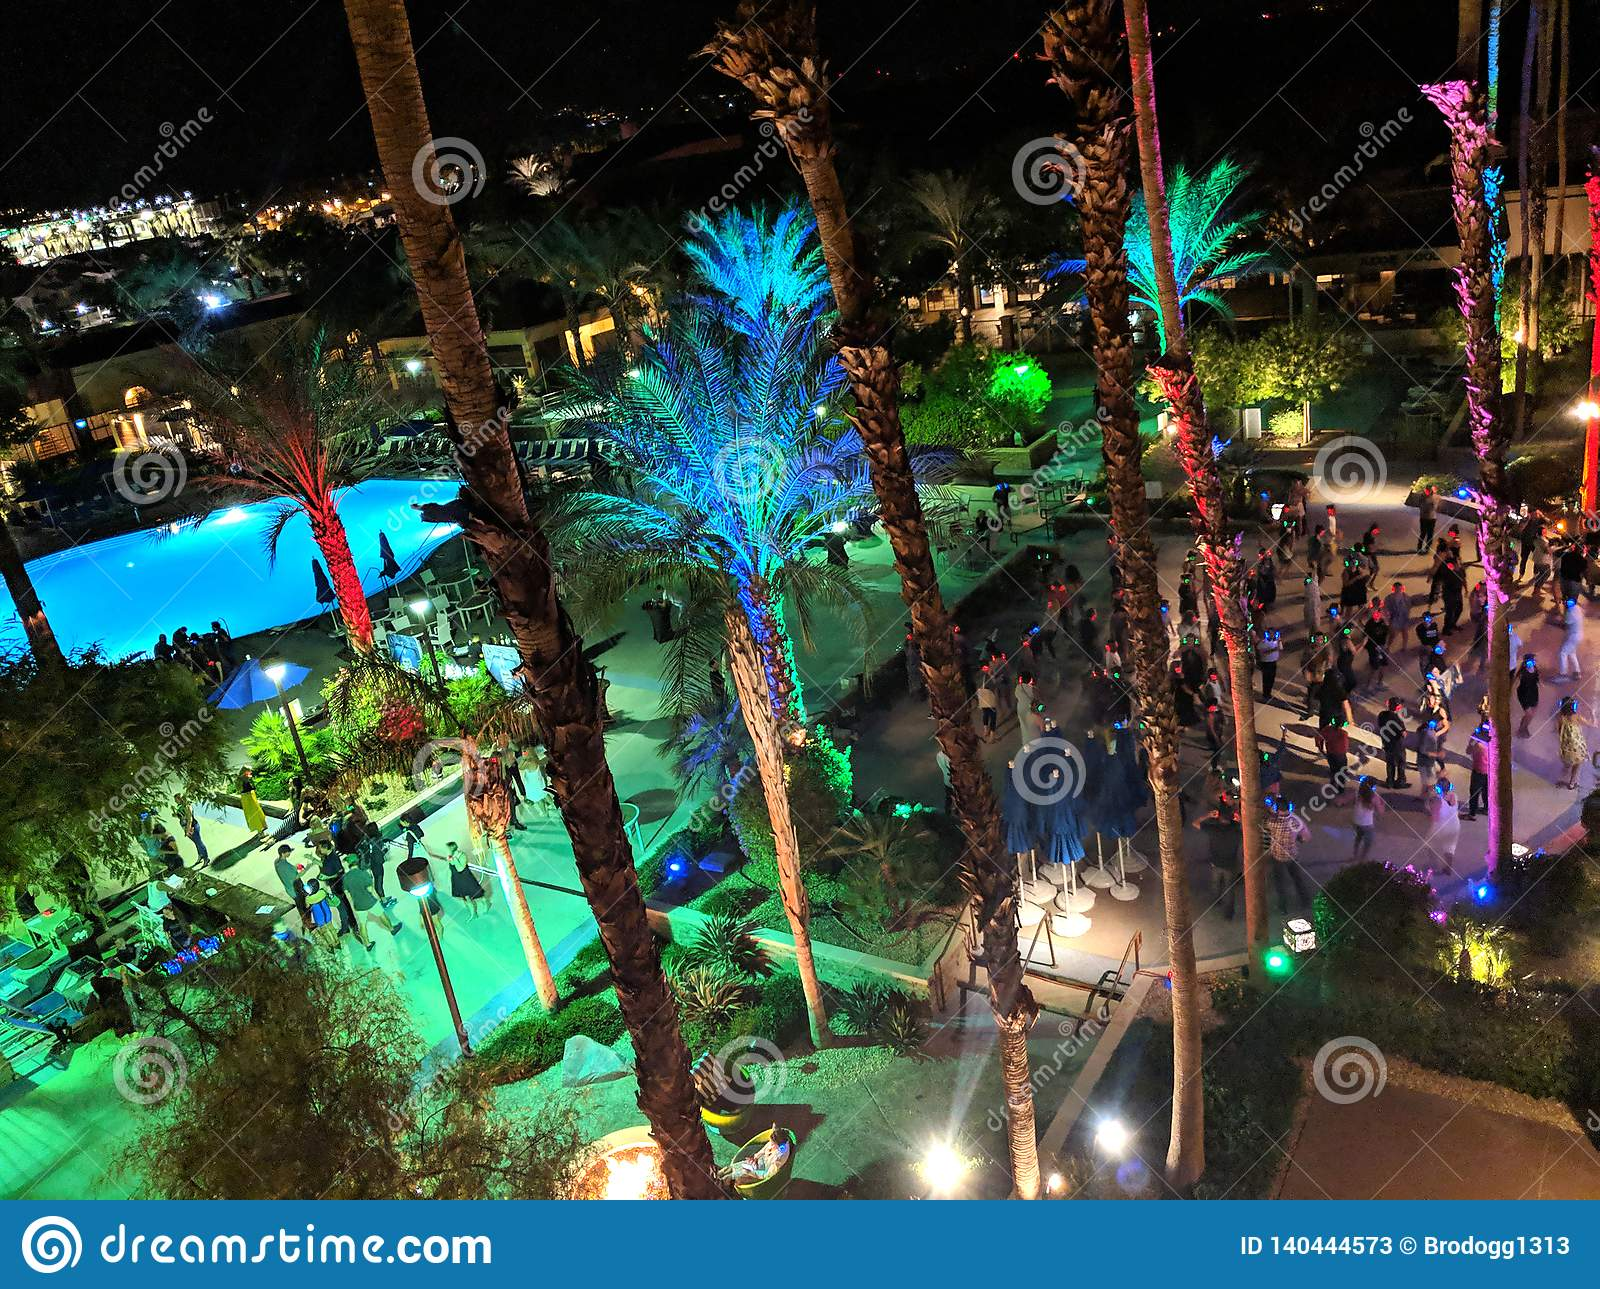 Aerial of Silent Disco Dance party at Music festival Wanderlust yoga event